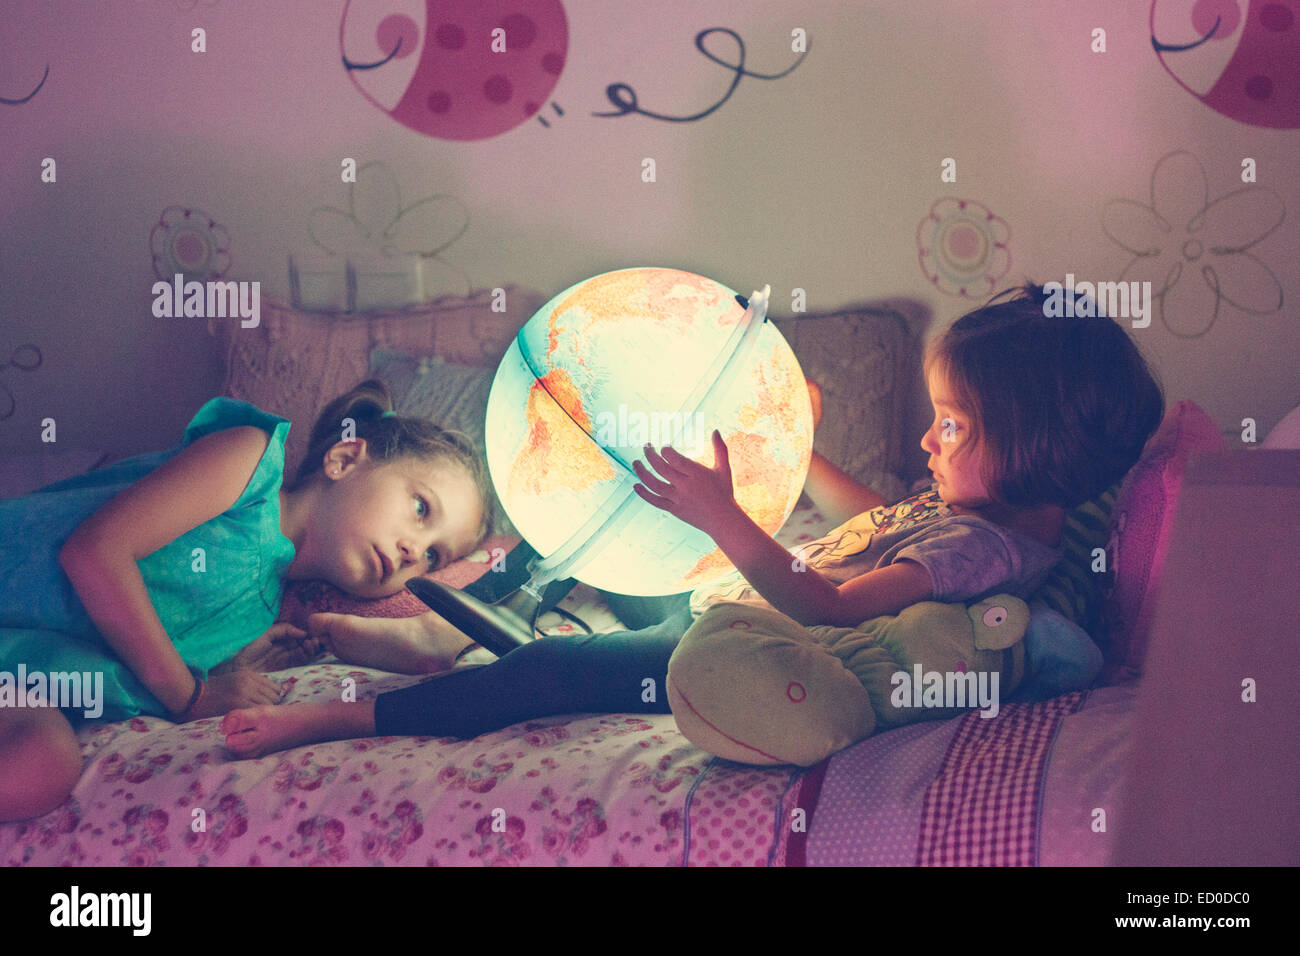 Two girls (2-3, 6-7) looking at illuminated lamp in shape of globe - Stock Image